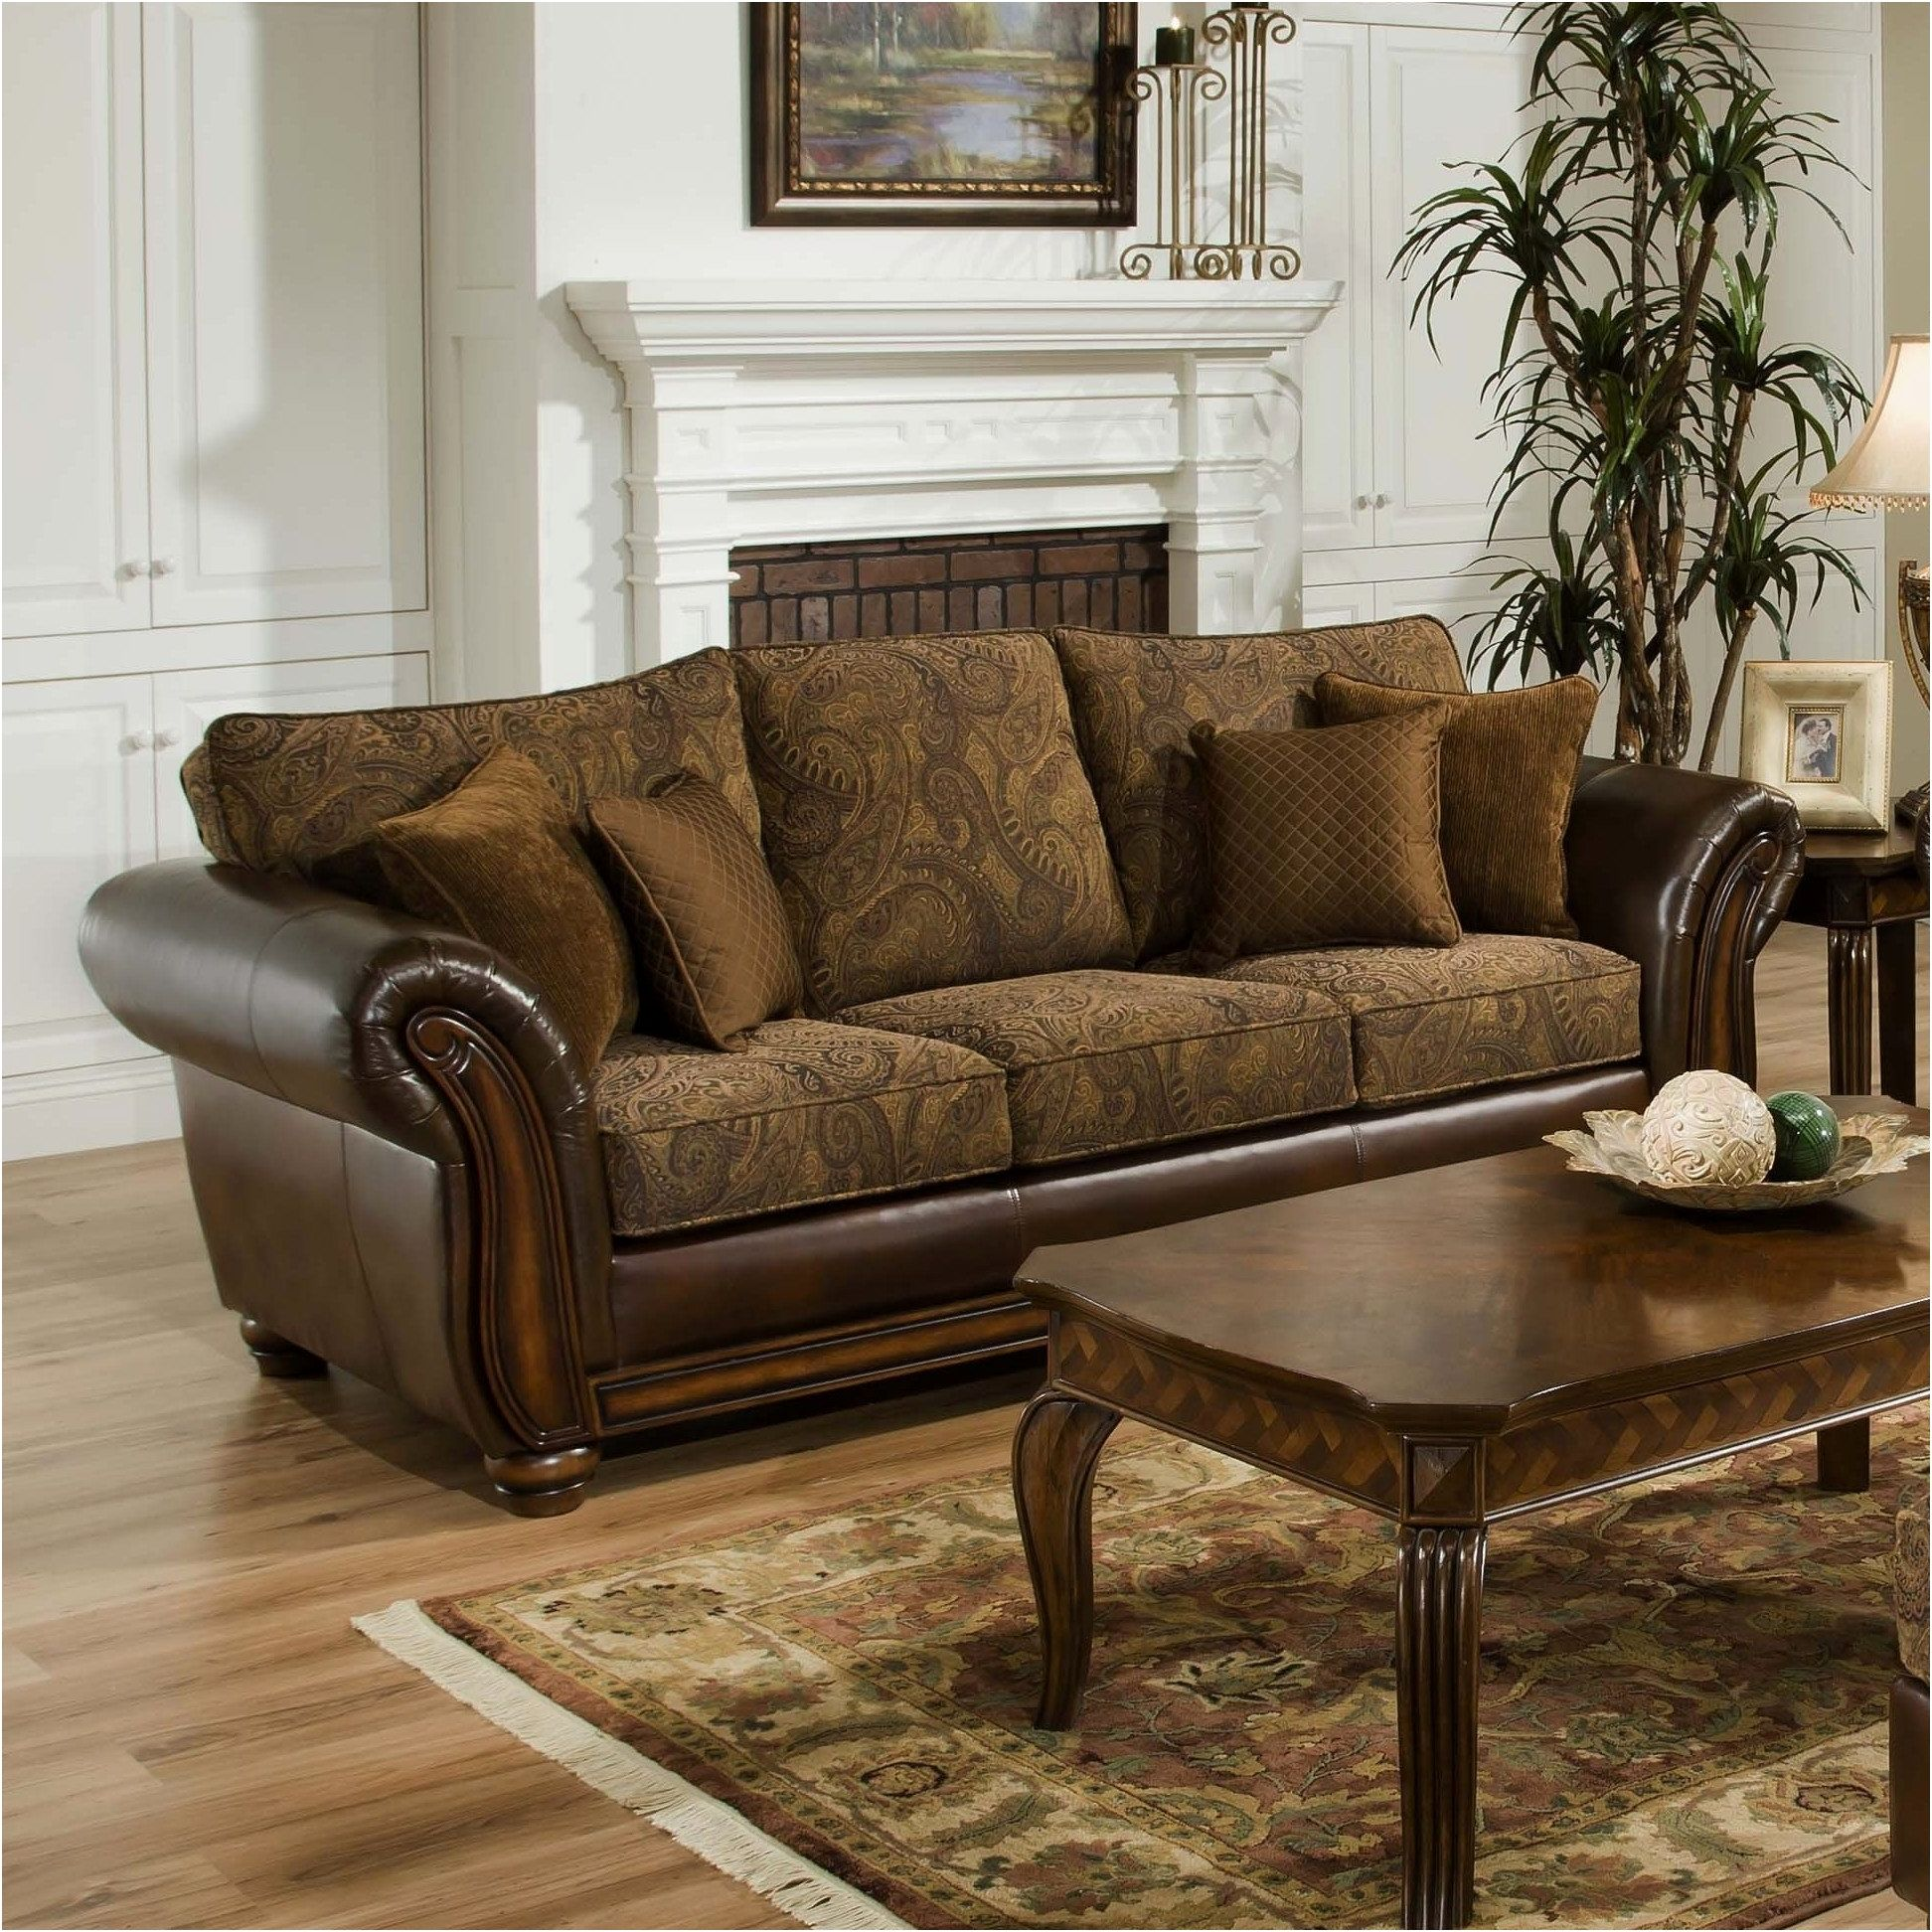 modern chaise sofa bed photograph-Top Chaise sofa Bed Decoration